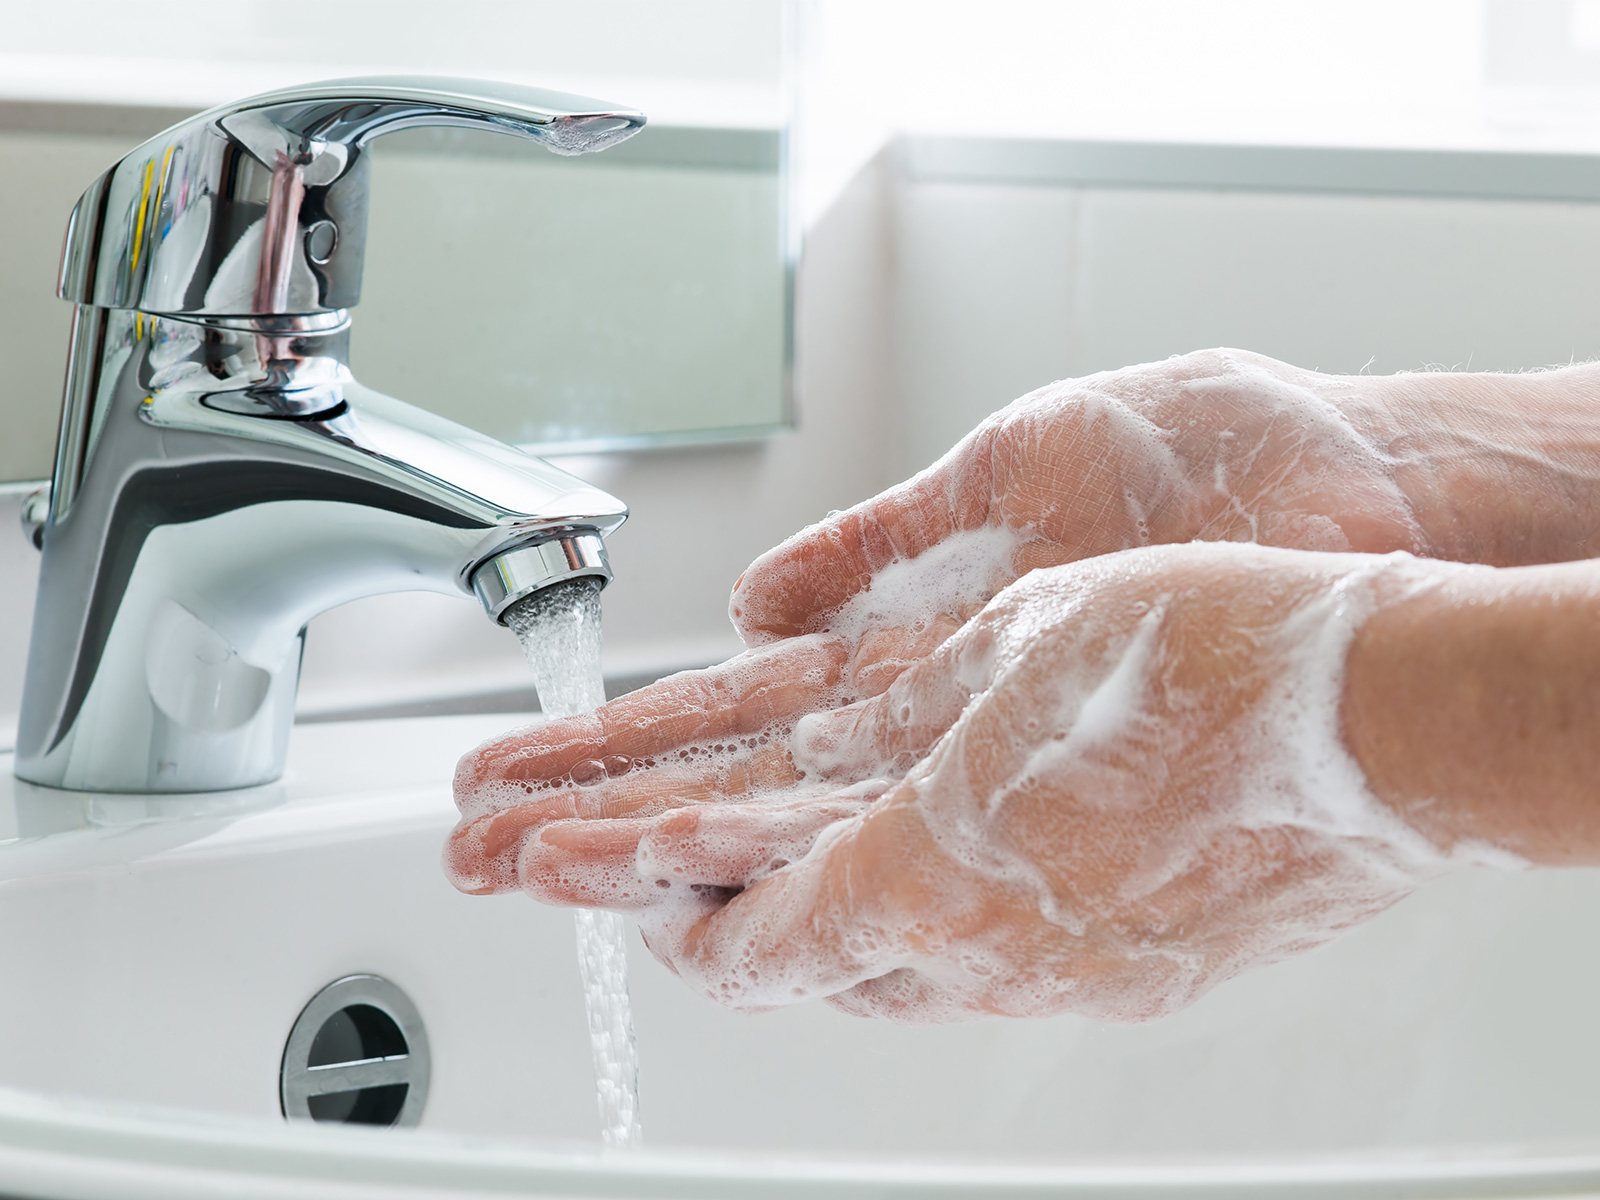 Person vigorously washing hands in sink